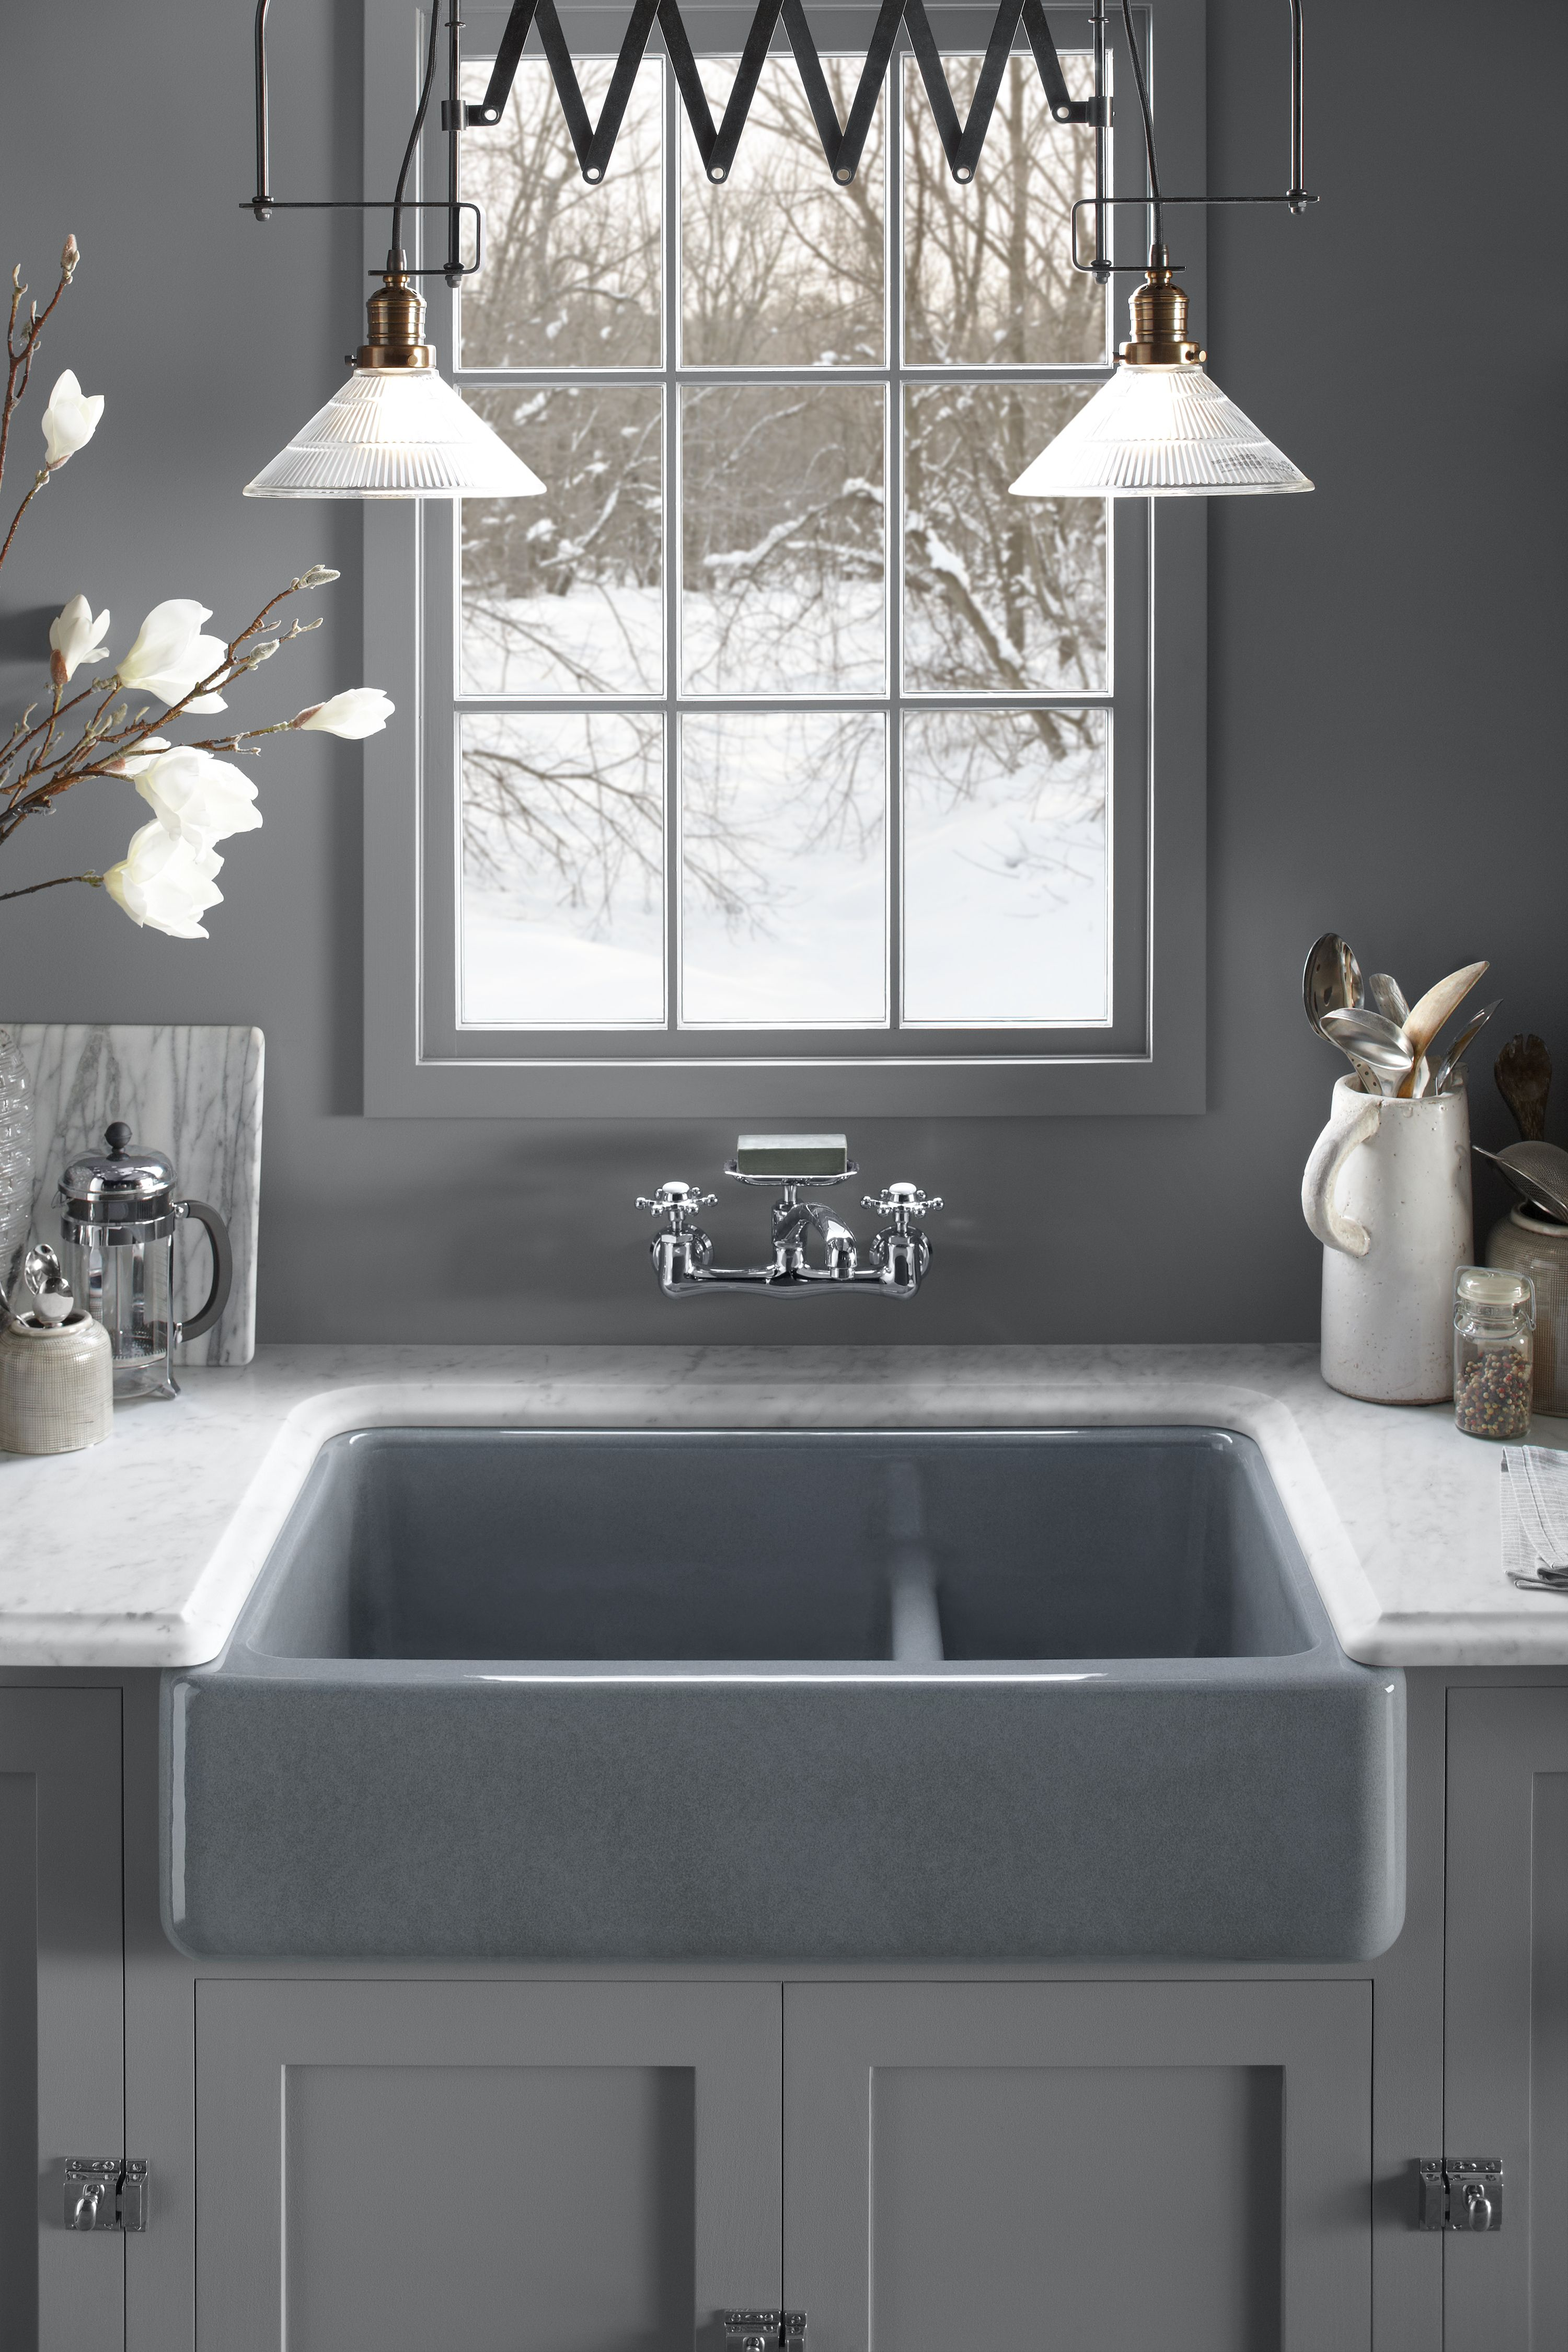 Stainless Steel Sinks · Kohler Smart Divide Bowls Make Our Whitehaven Sinks  More Functional Than Ever. A Low Barrier